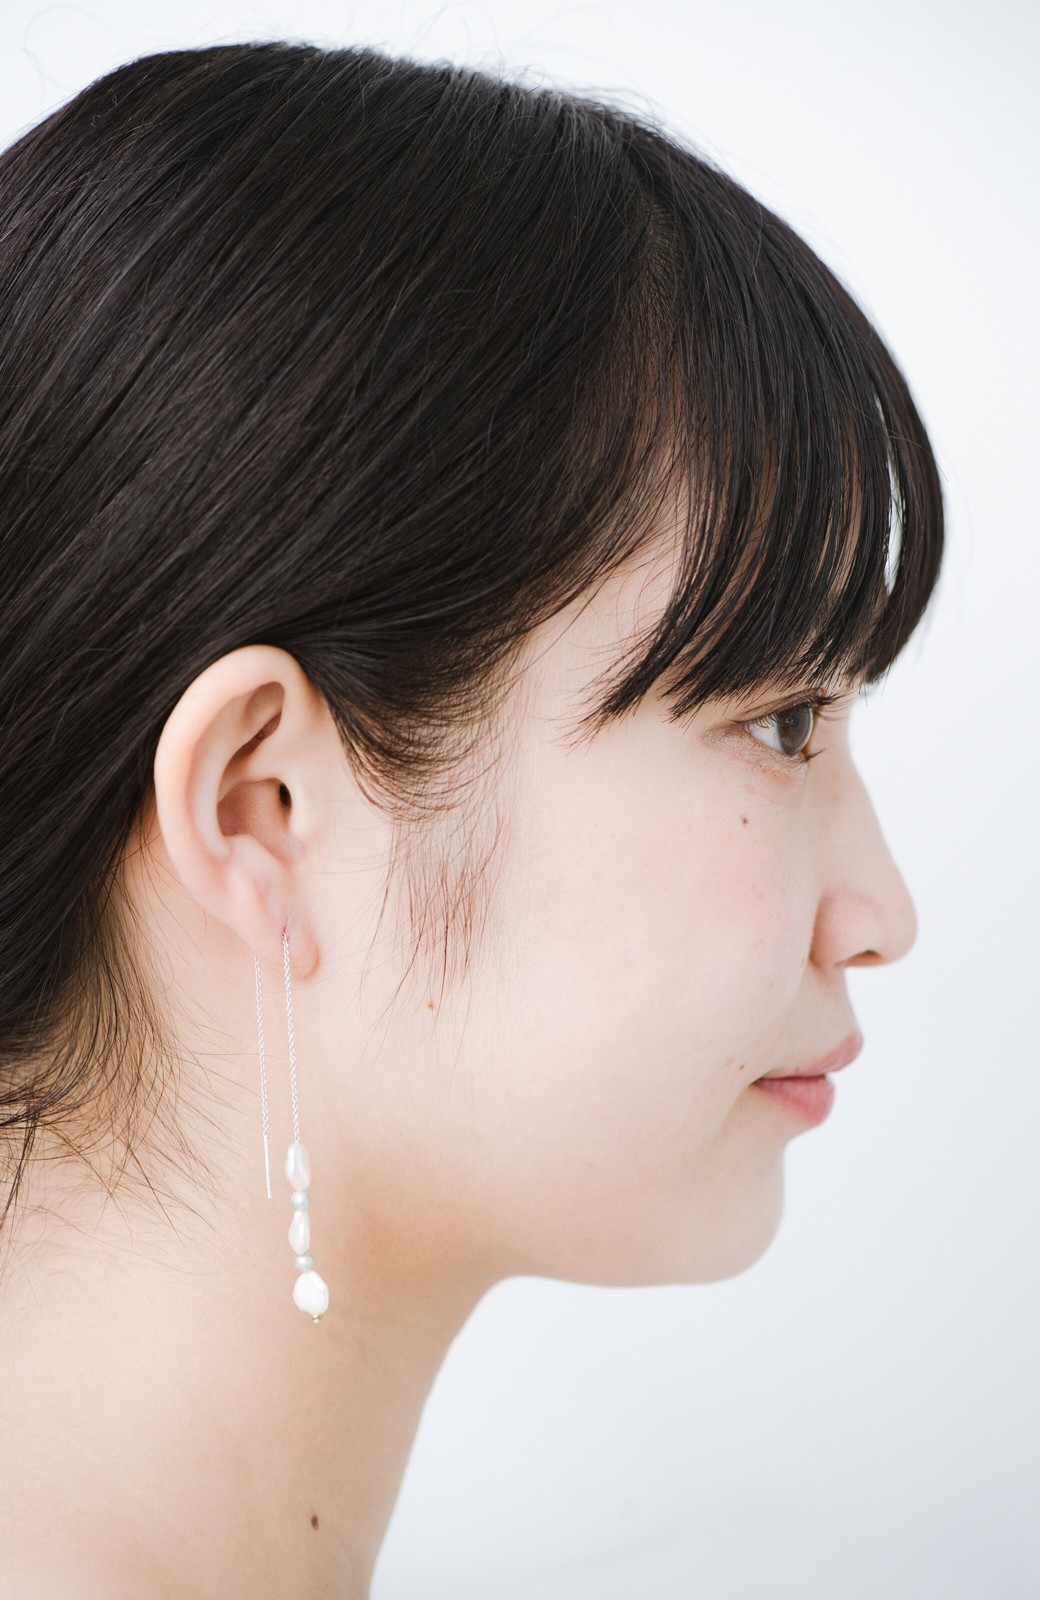 haco! 連なるチェーン&淡水パールがきれいなピアス ines by ciika <グレー>の商品写真6